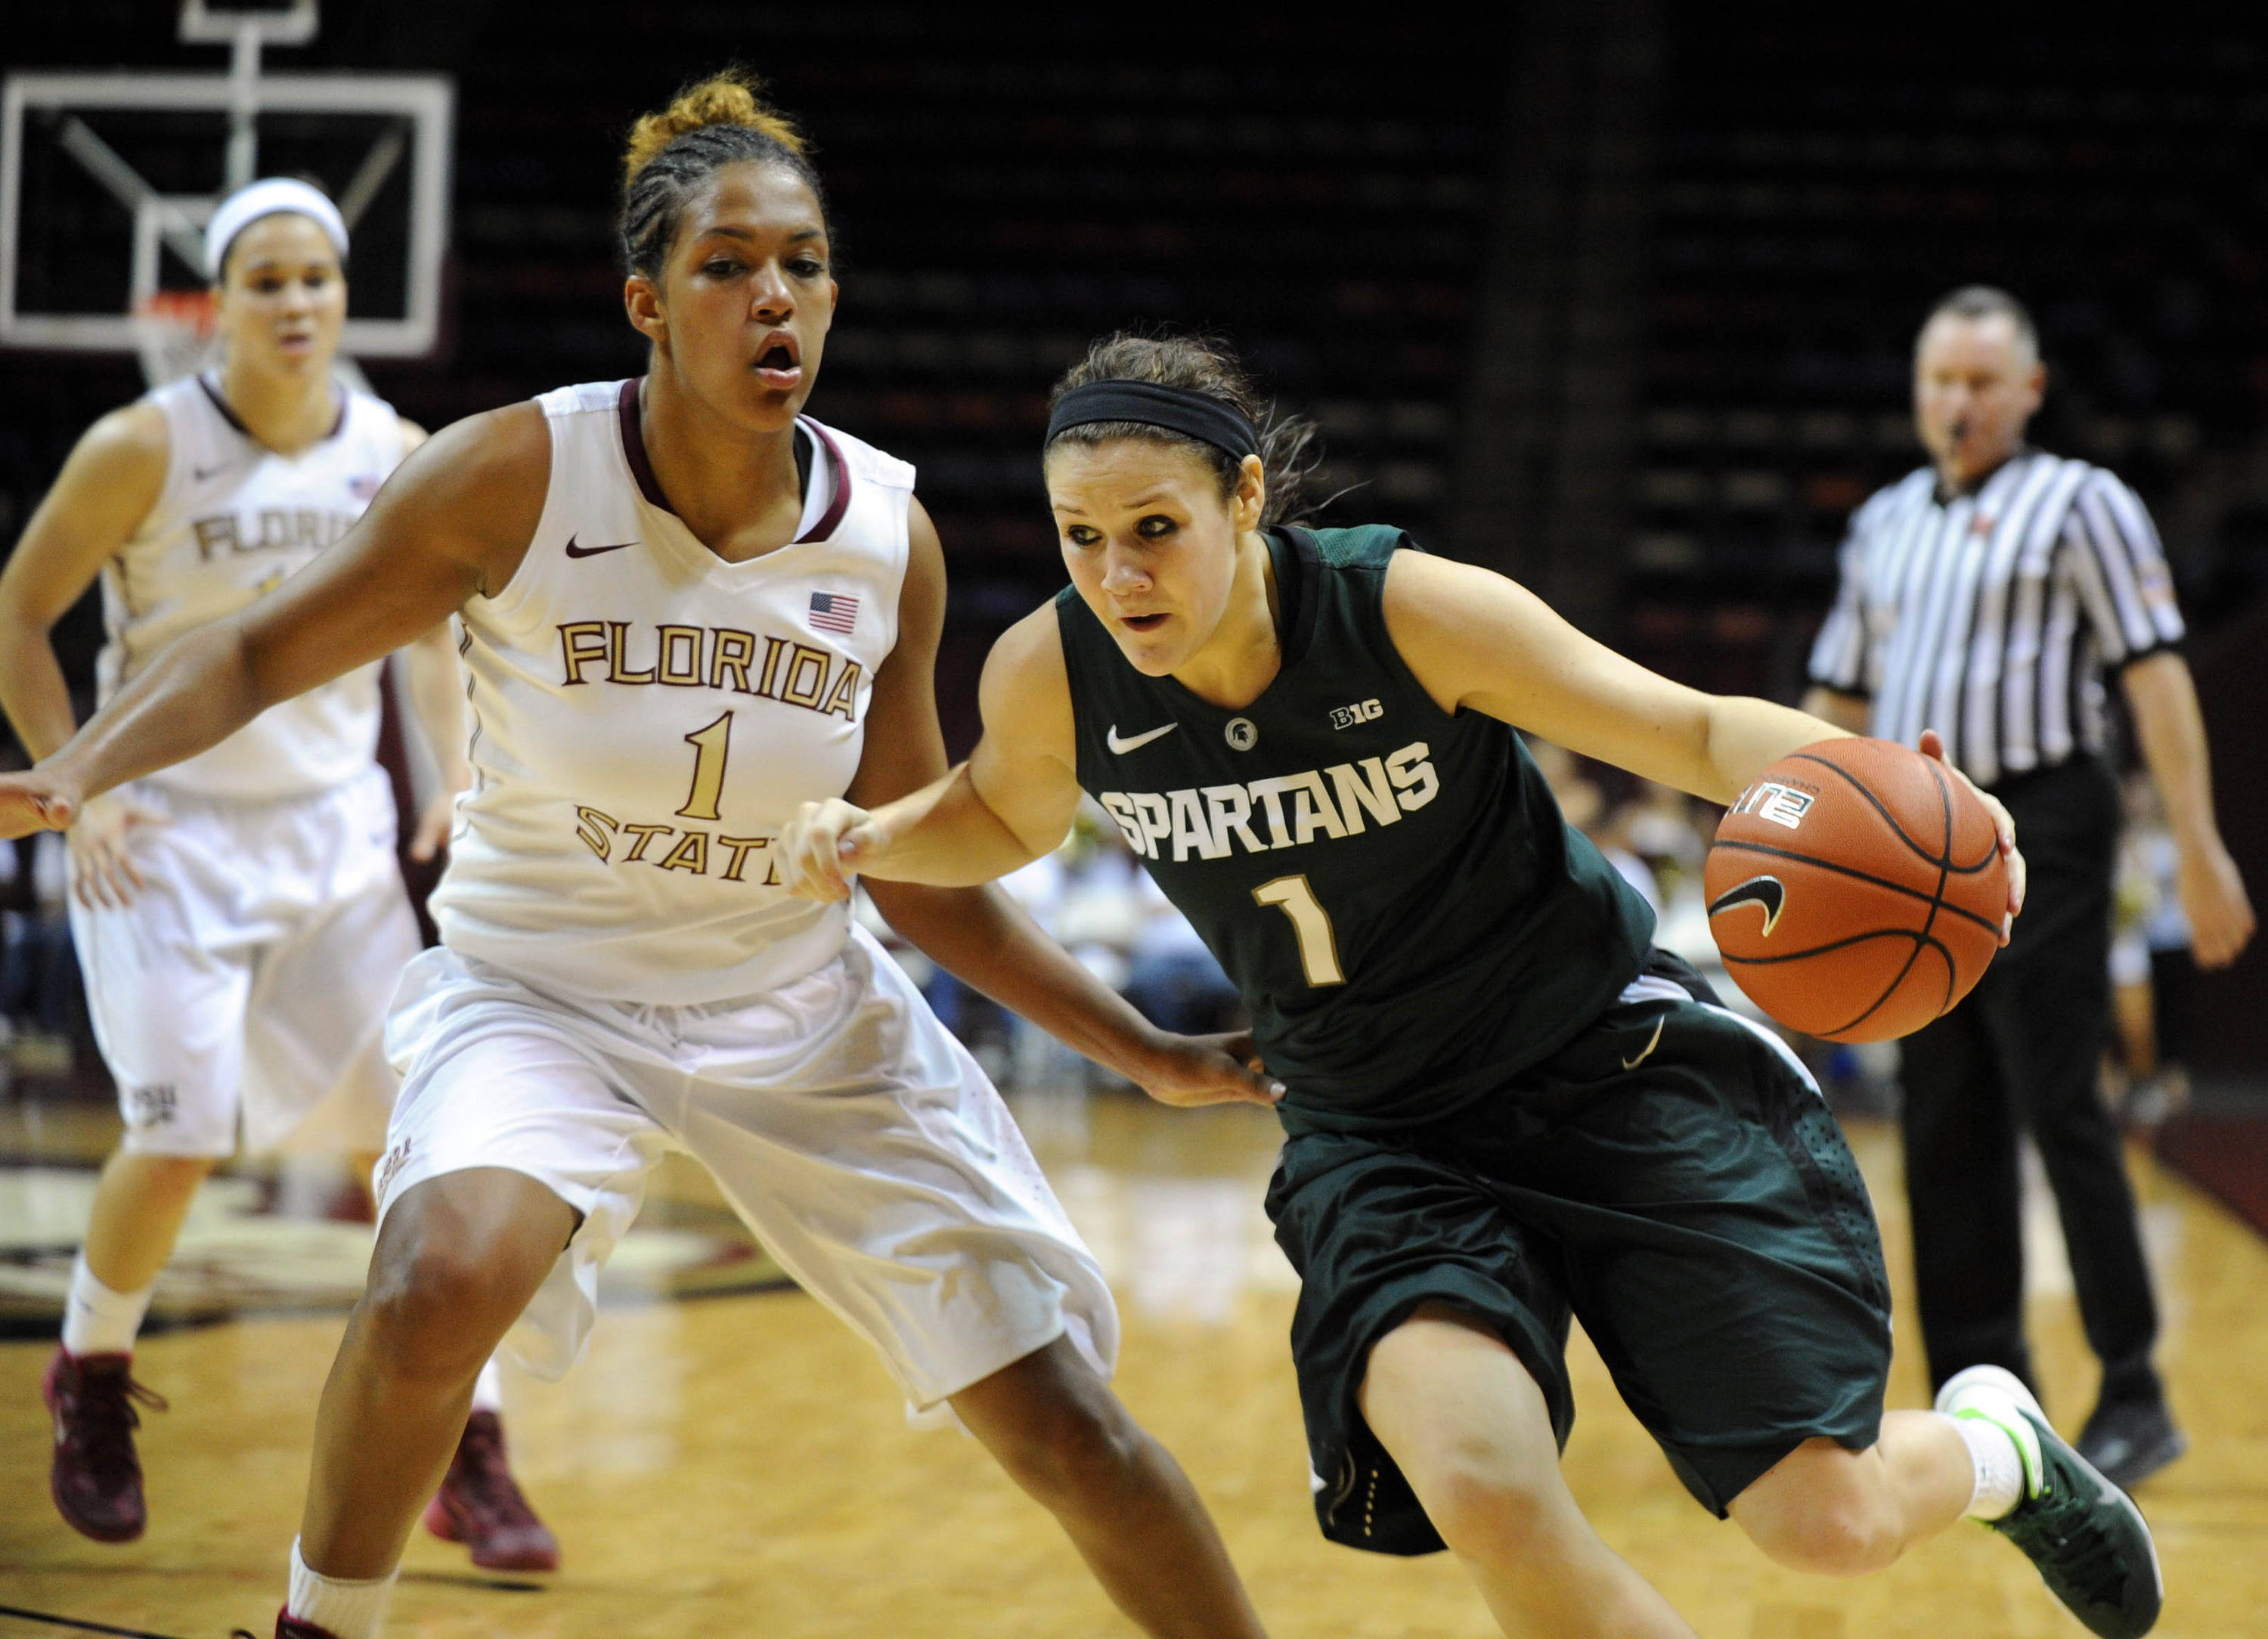 Dec 4, 2013; Tallahassee, FL, USA; Michigan State guard Tori Jankoska (1) moves past Florida State Seminoles guard Morgan Jones (1) during the game at the Donald L. Tucker Center (Tallahassee). Mandatory Credit: Melina Vastola-USA TODAY Sports